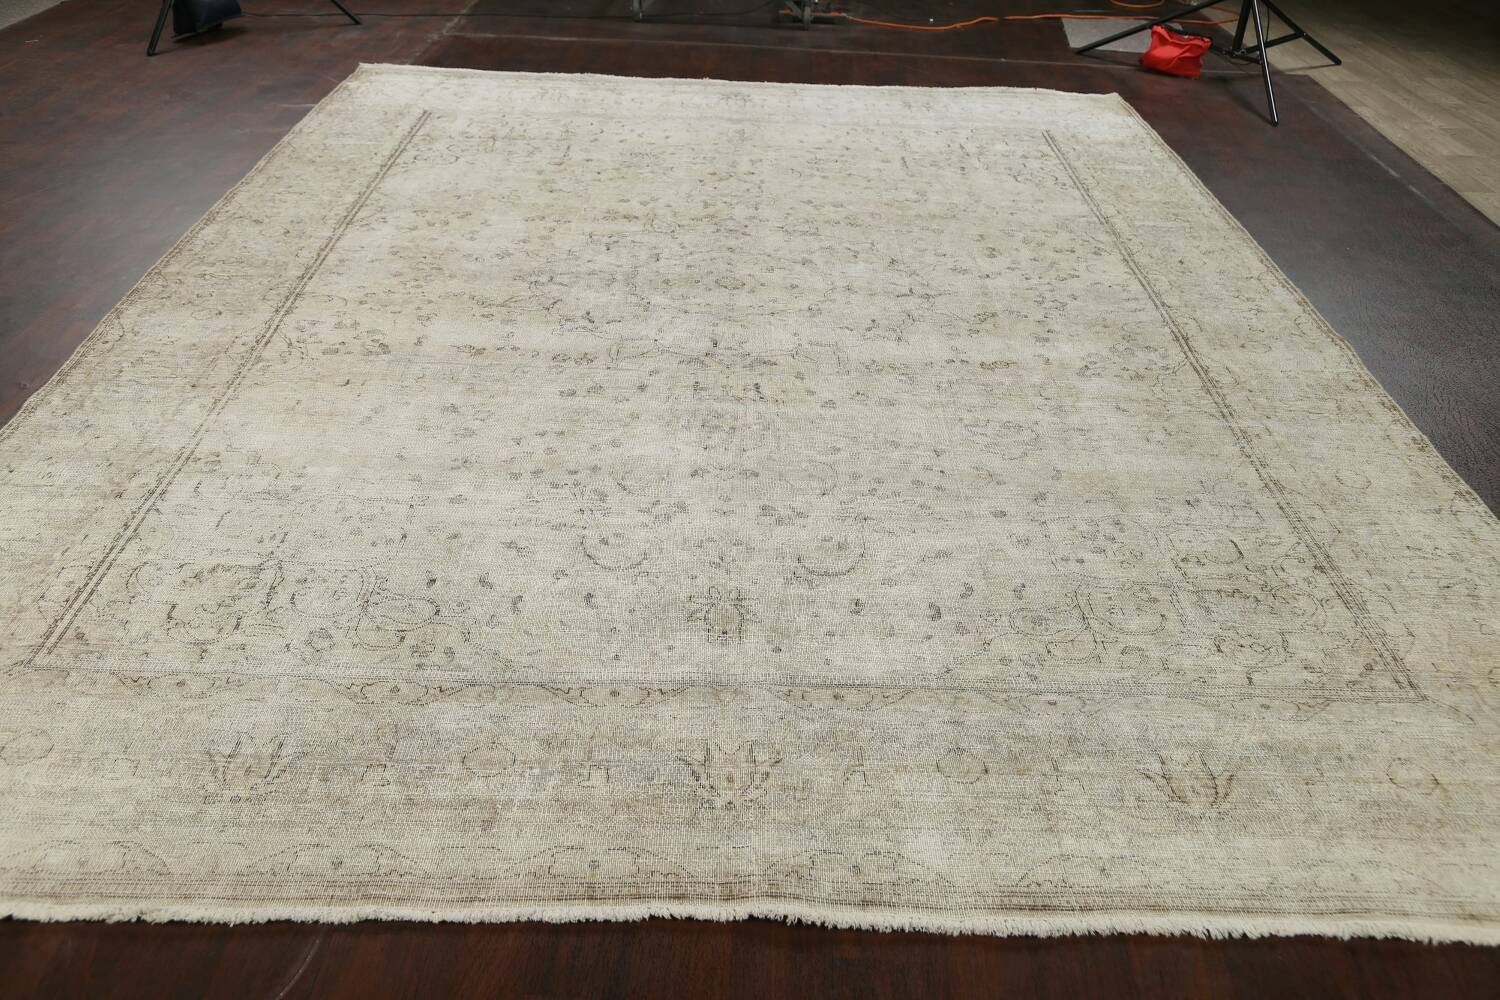 Muted Distressed Floral Tabriz Persian Area Rug 10x13 image 20